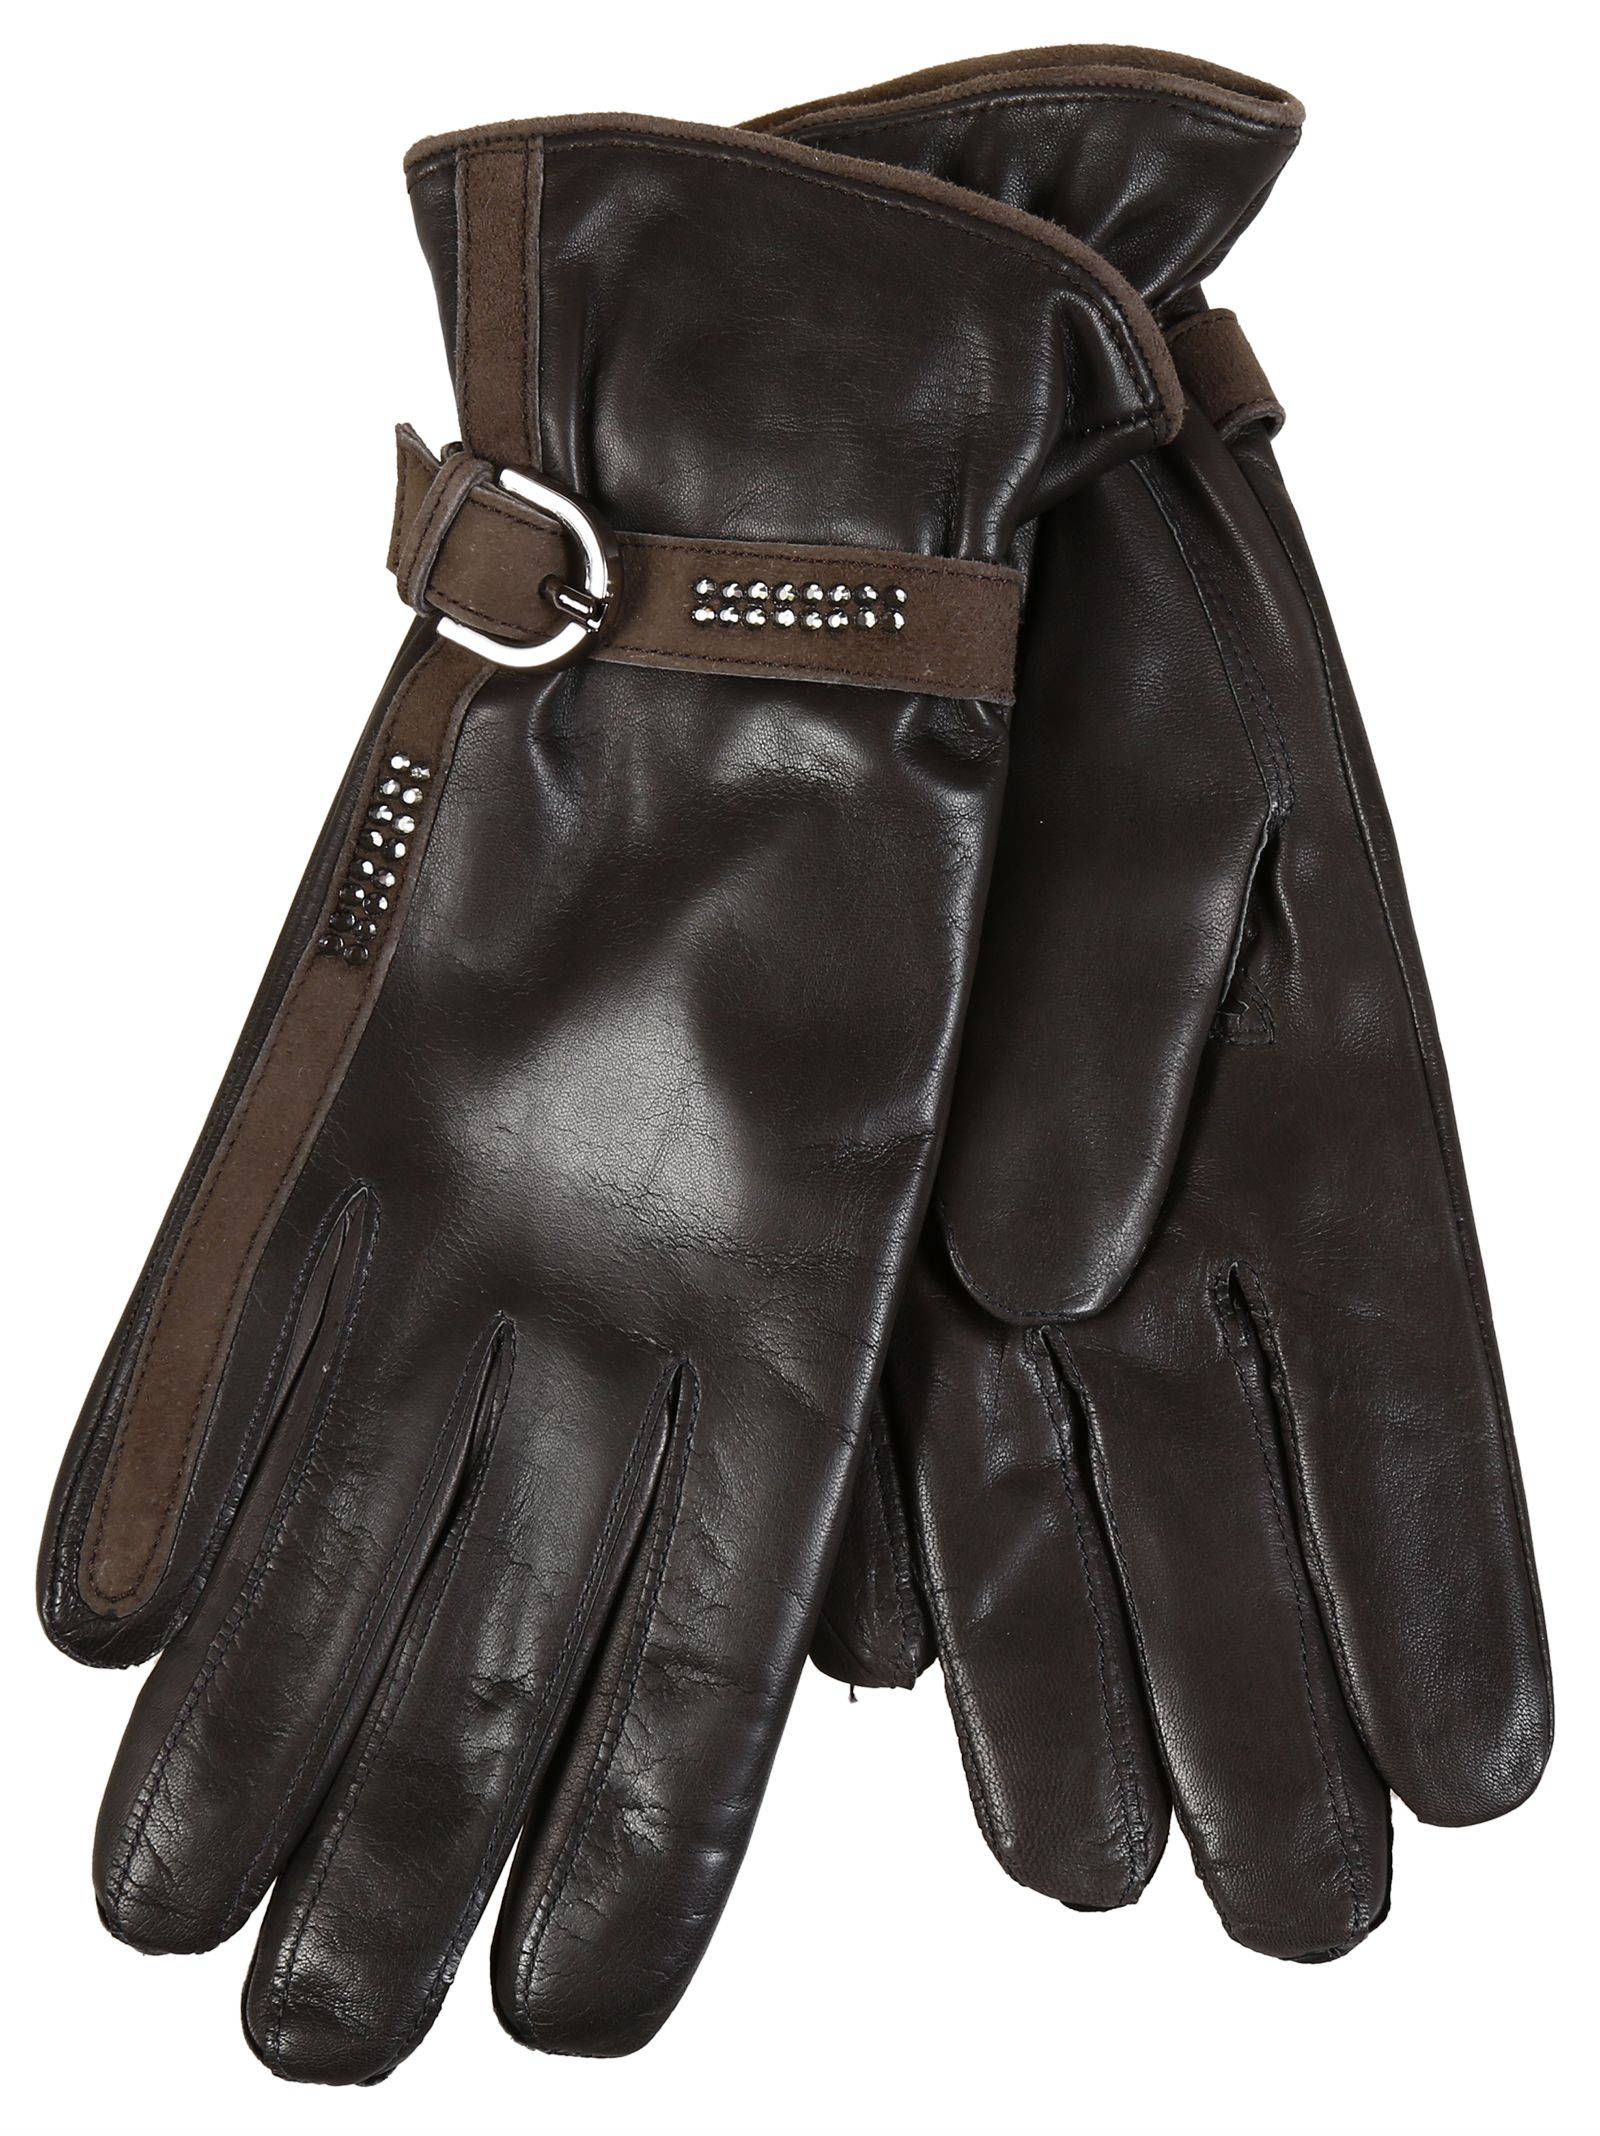 Restelli Nappa Leather Gloves With Crystals